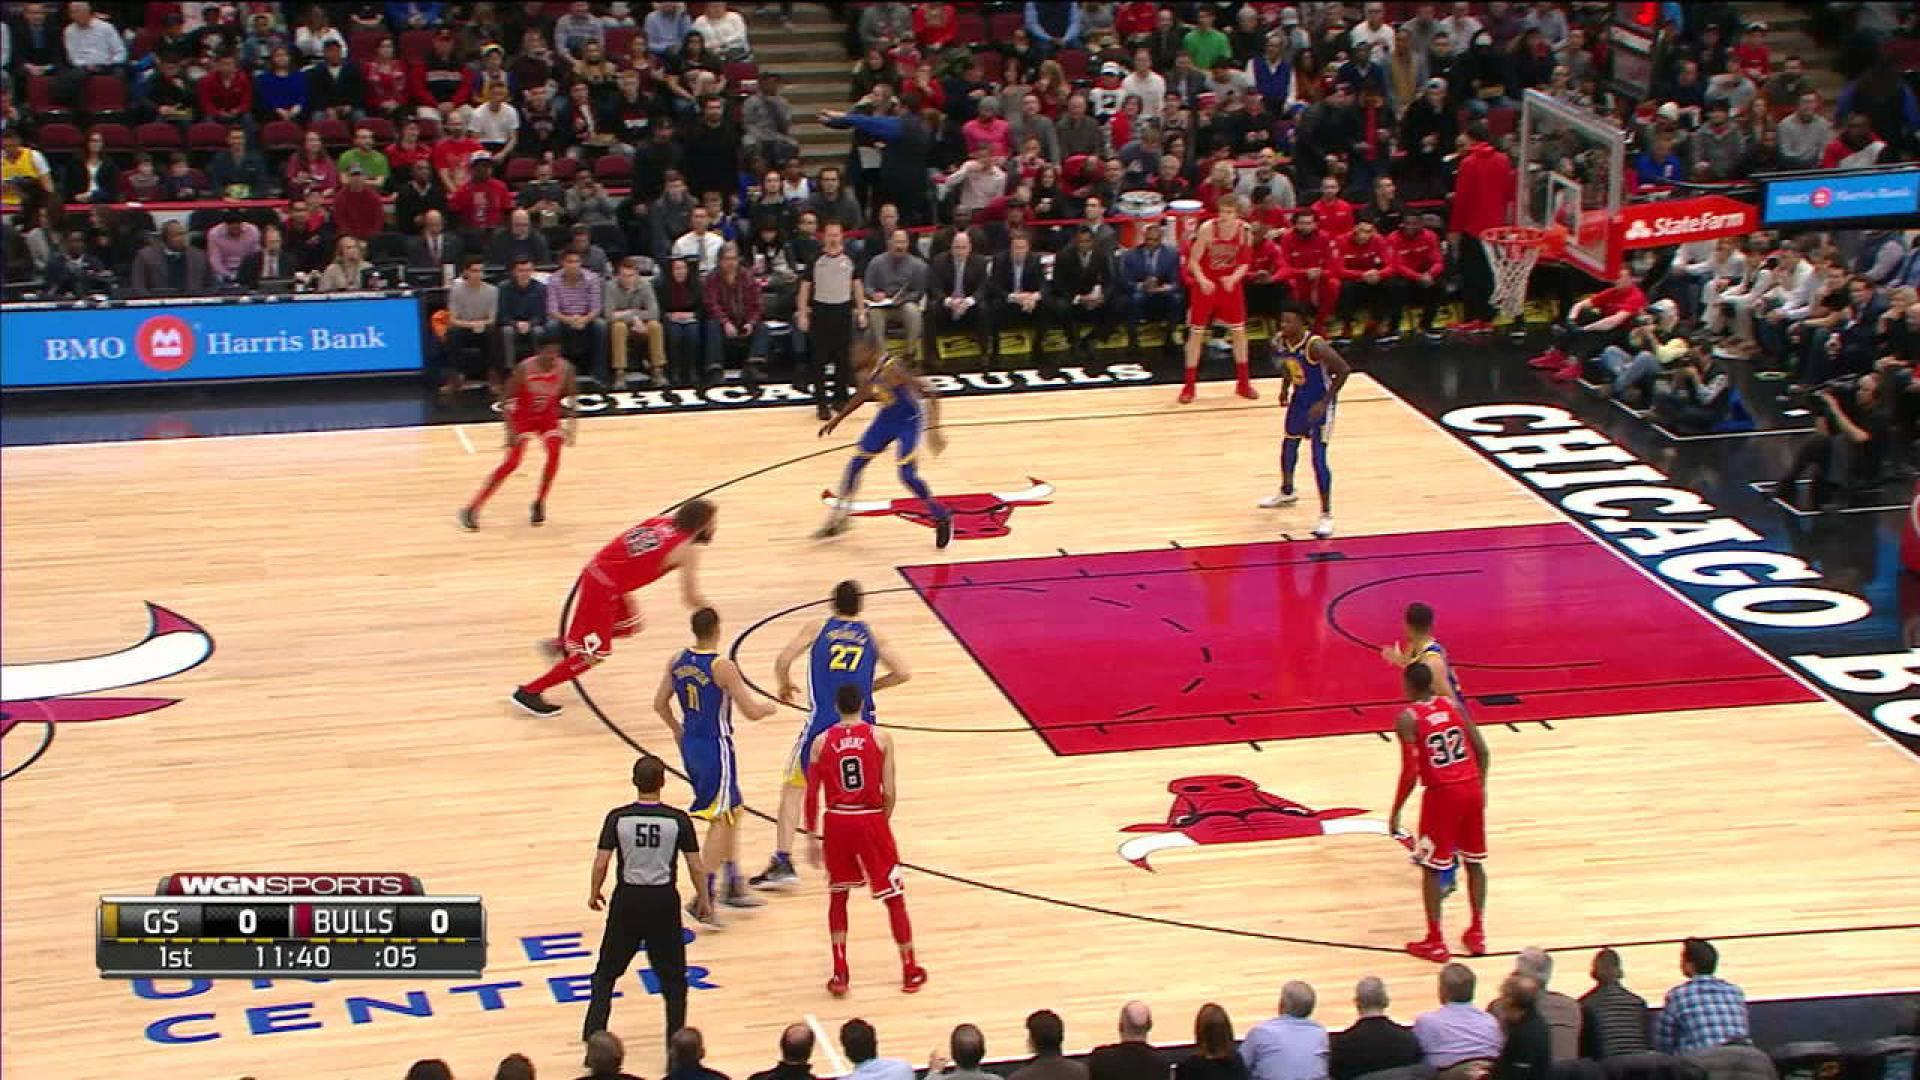 Kris Dunn Face Plants After Dunk